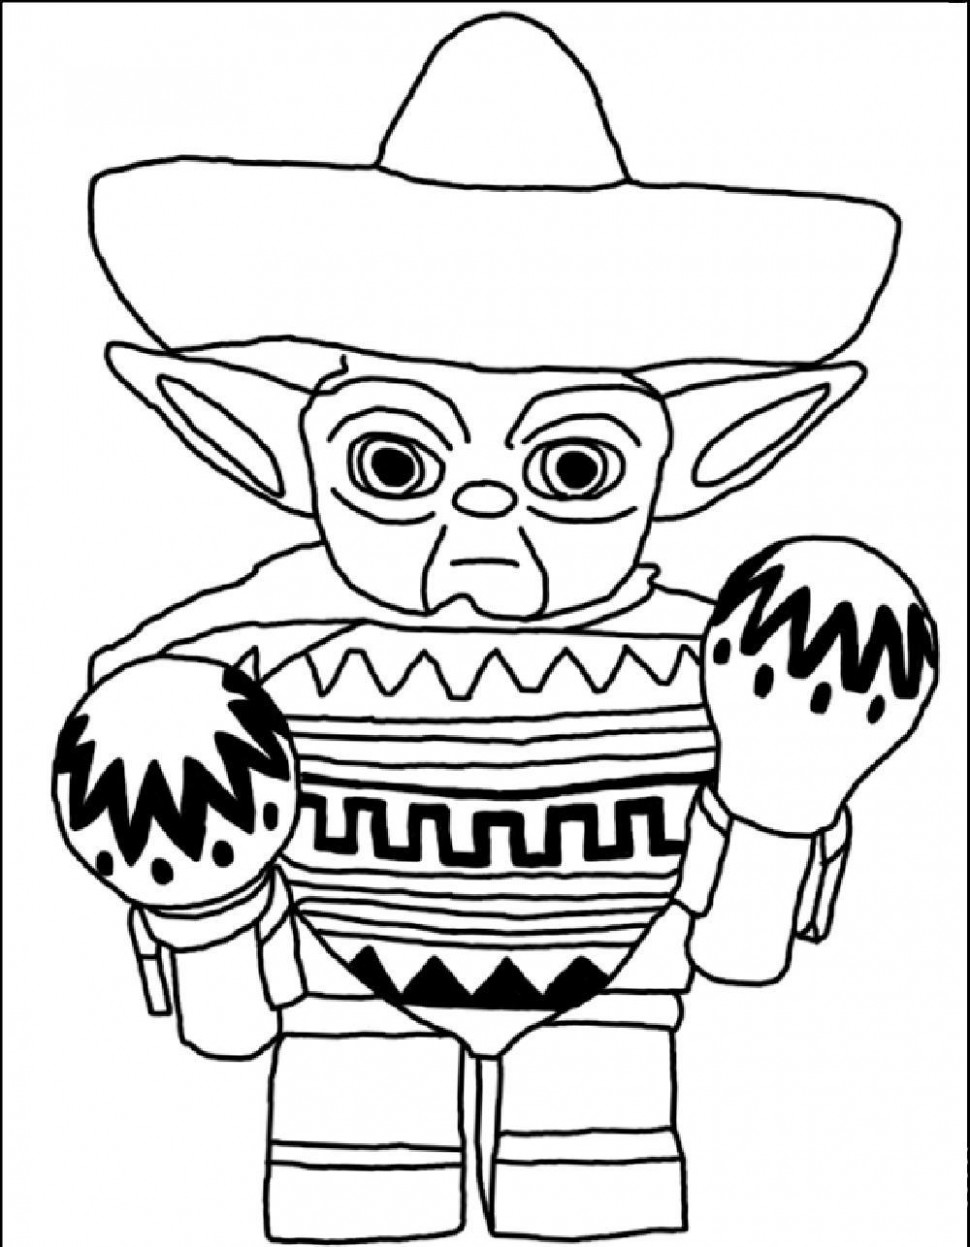 Lego Star Wars Coloring Book Pages Bestappsforkids Coloring Pages ...